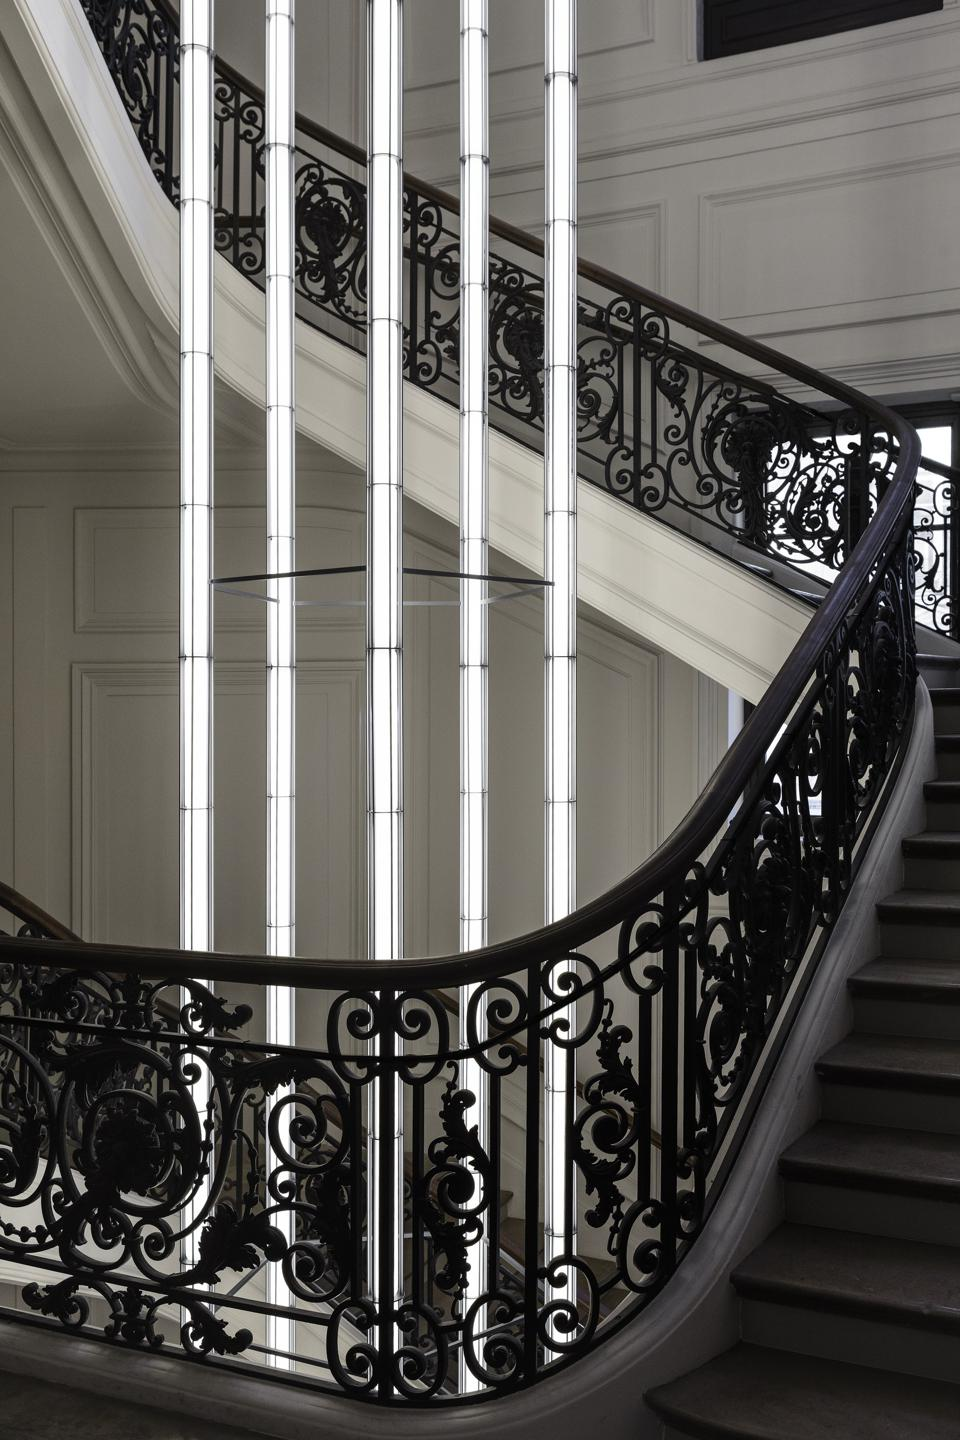 Monumental light in the 19th century staircase designed by Ronan & Erwan Bouroullec